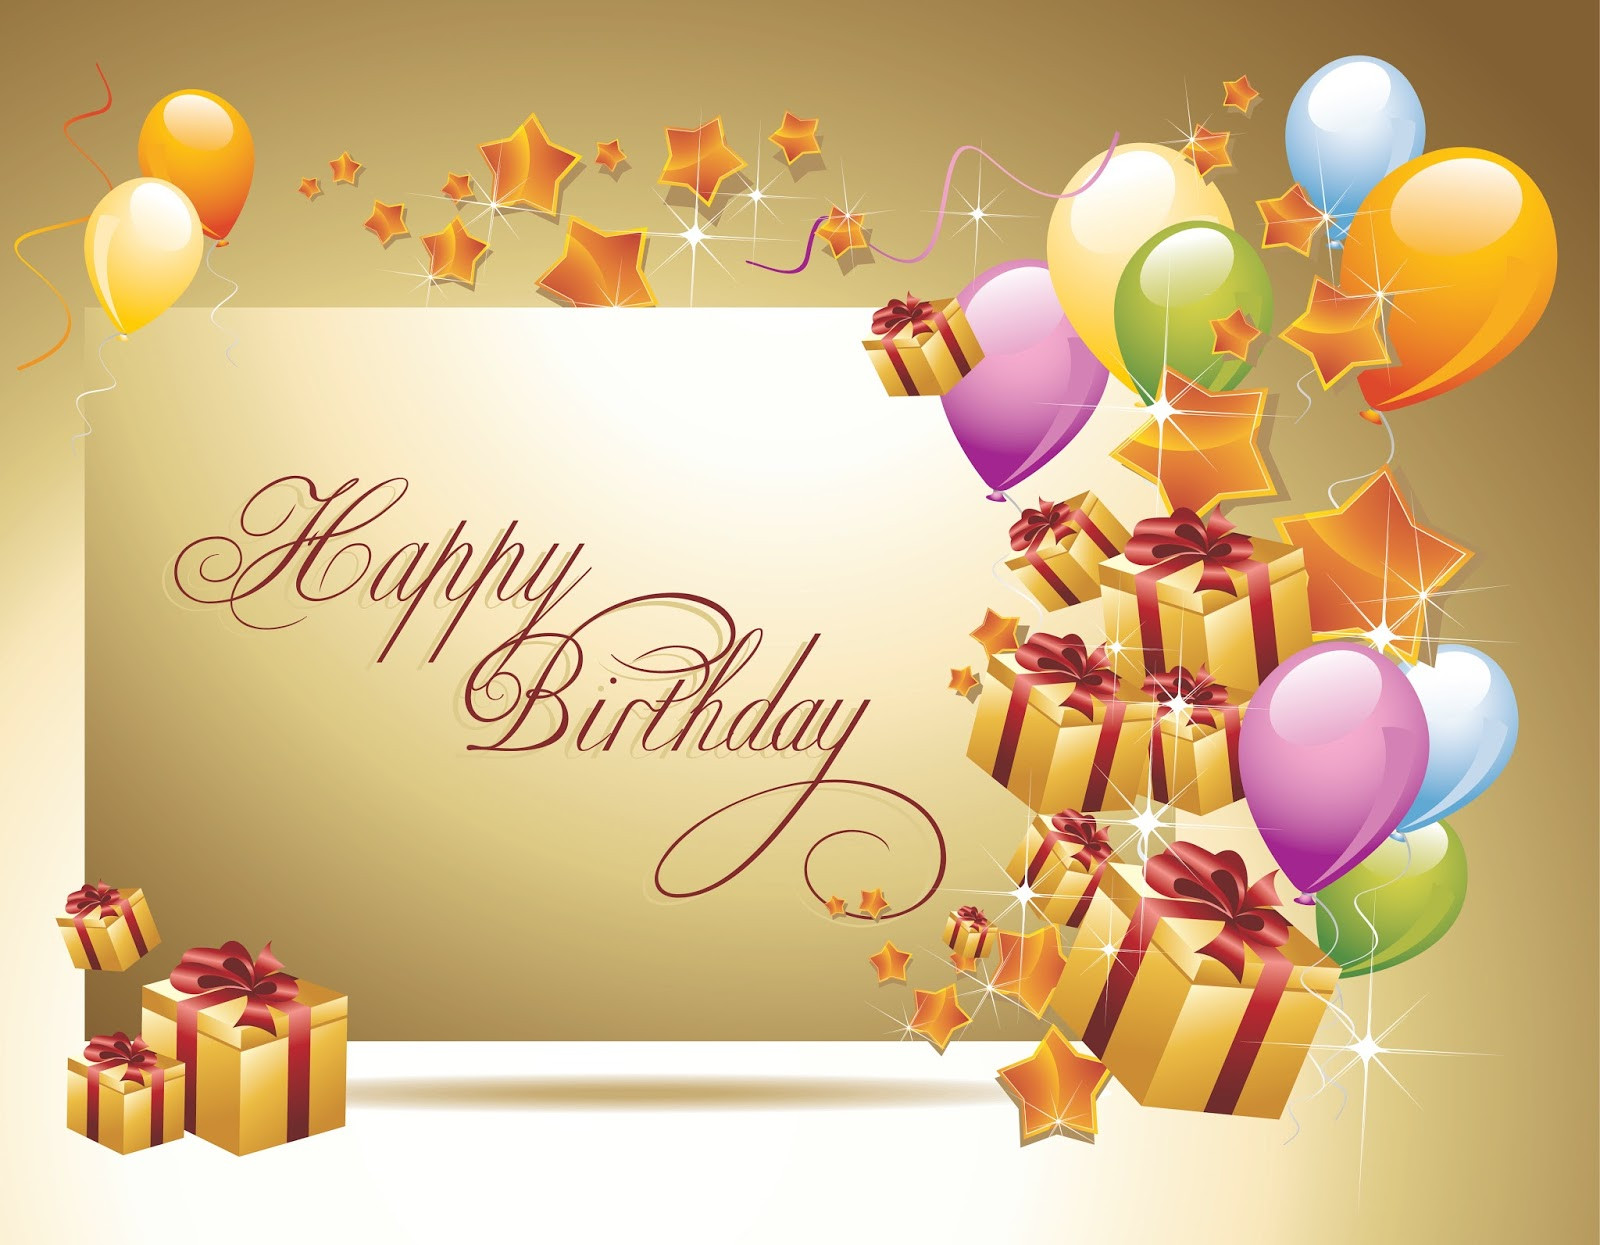 Best ideas about Birthday Wishes Messages . Save or Pin 50 Birthday Wishes and Messages with Quotes Good Now.